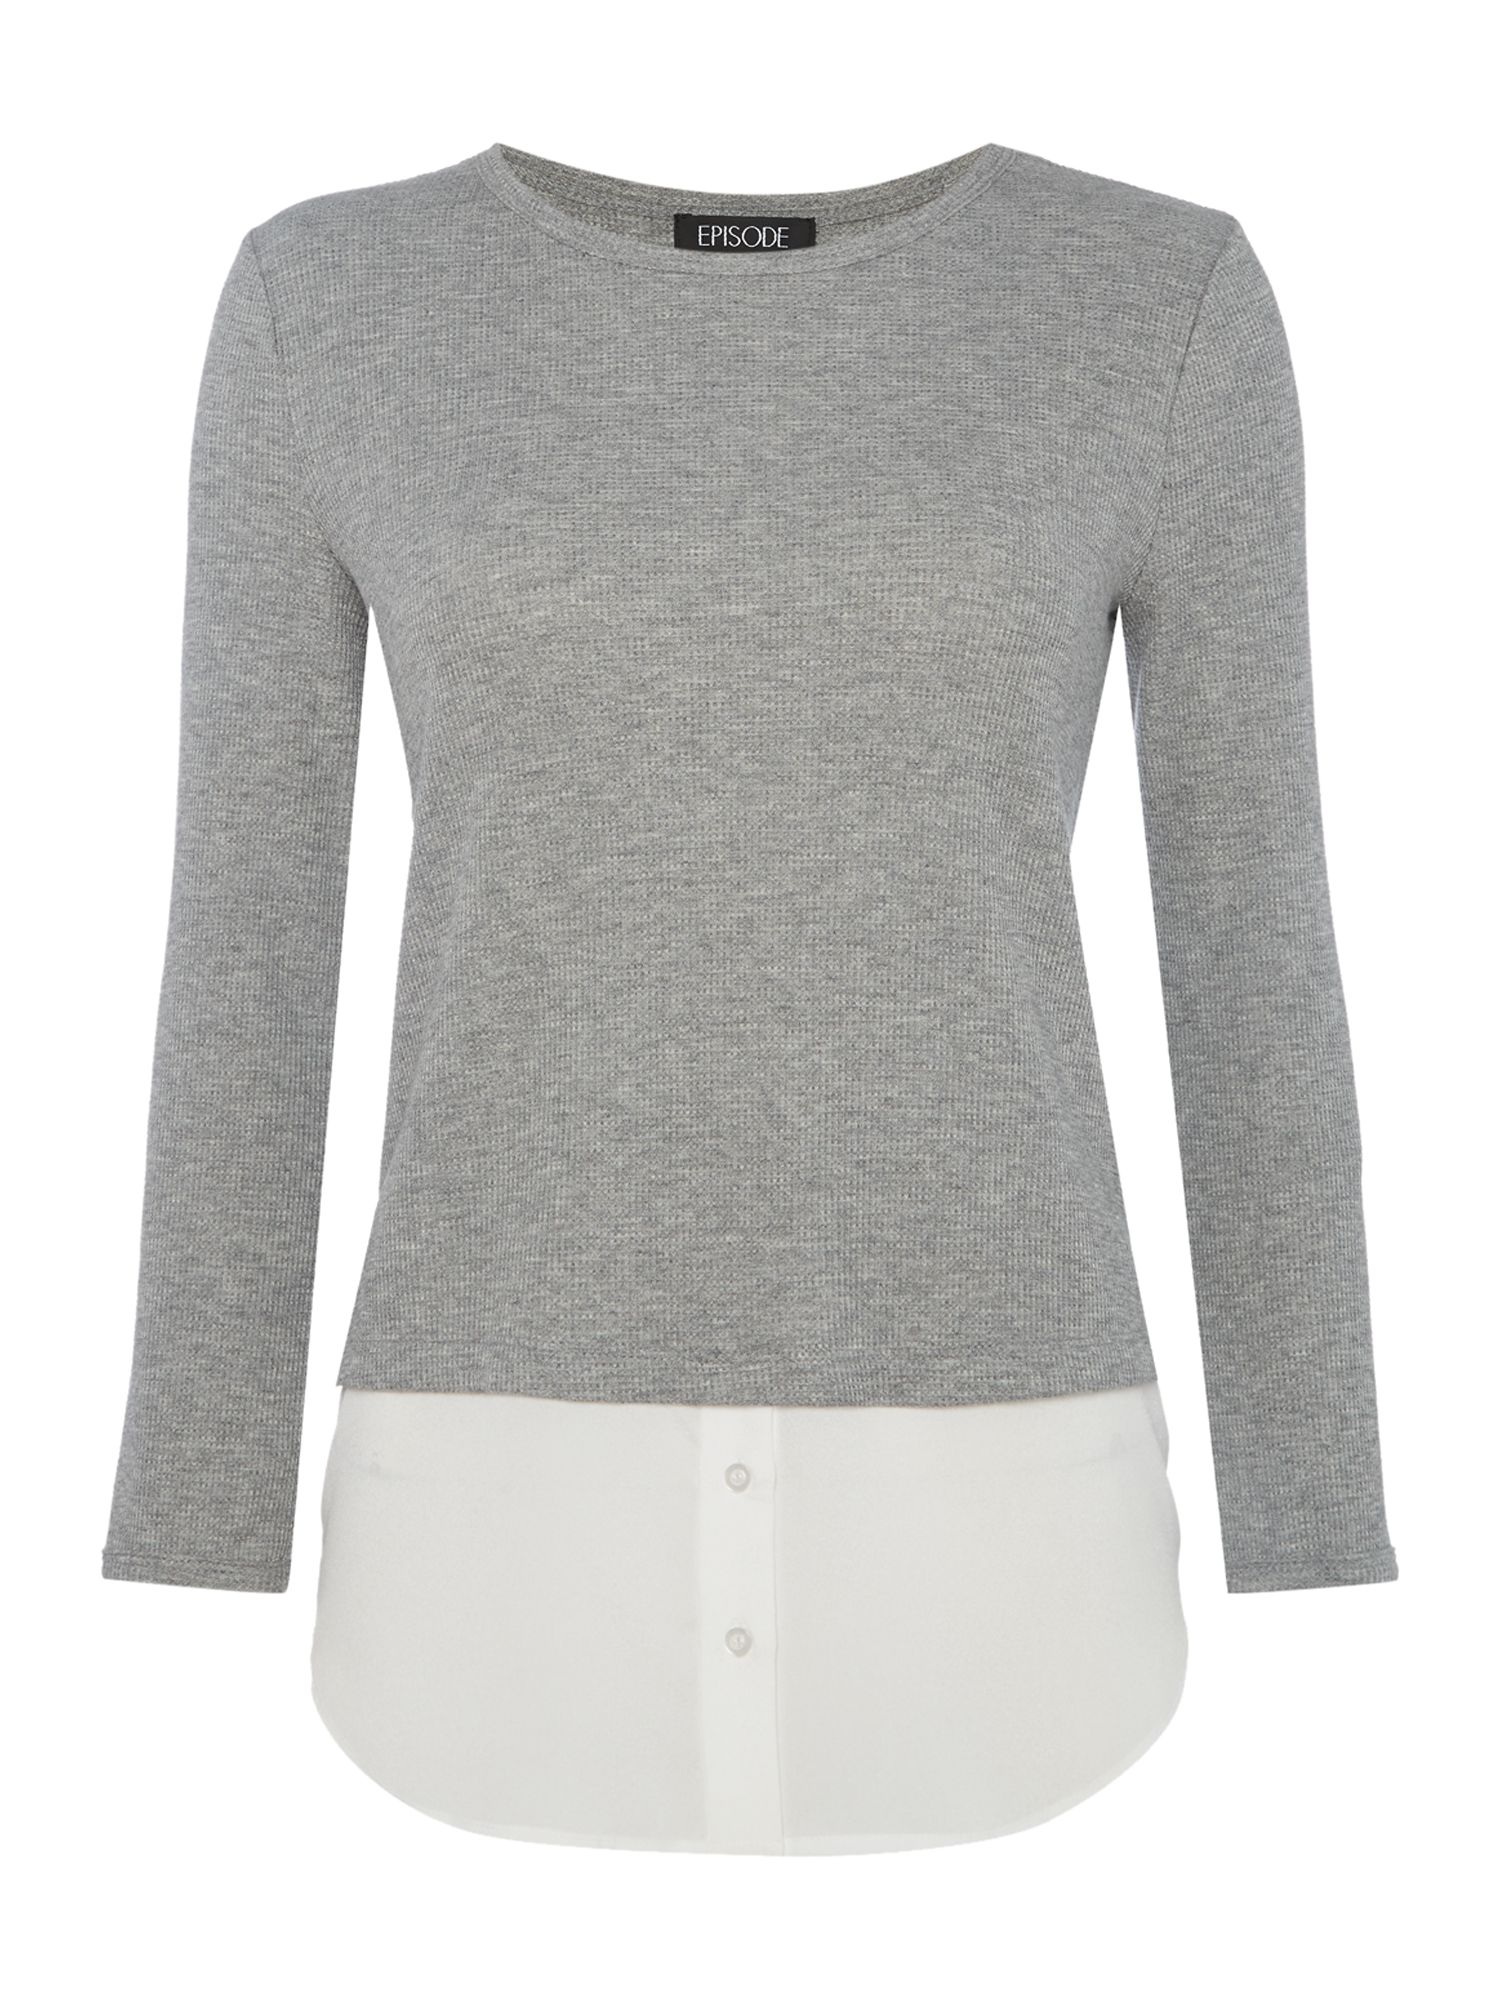 Episode Episode Long sleeve double layer jumper, Heather